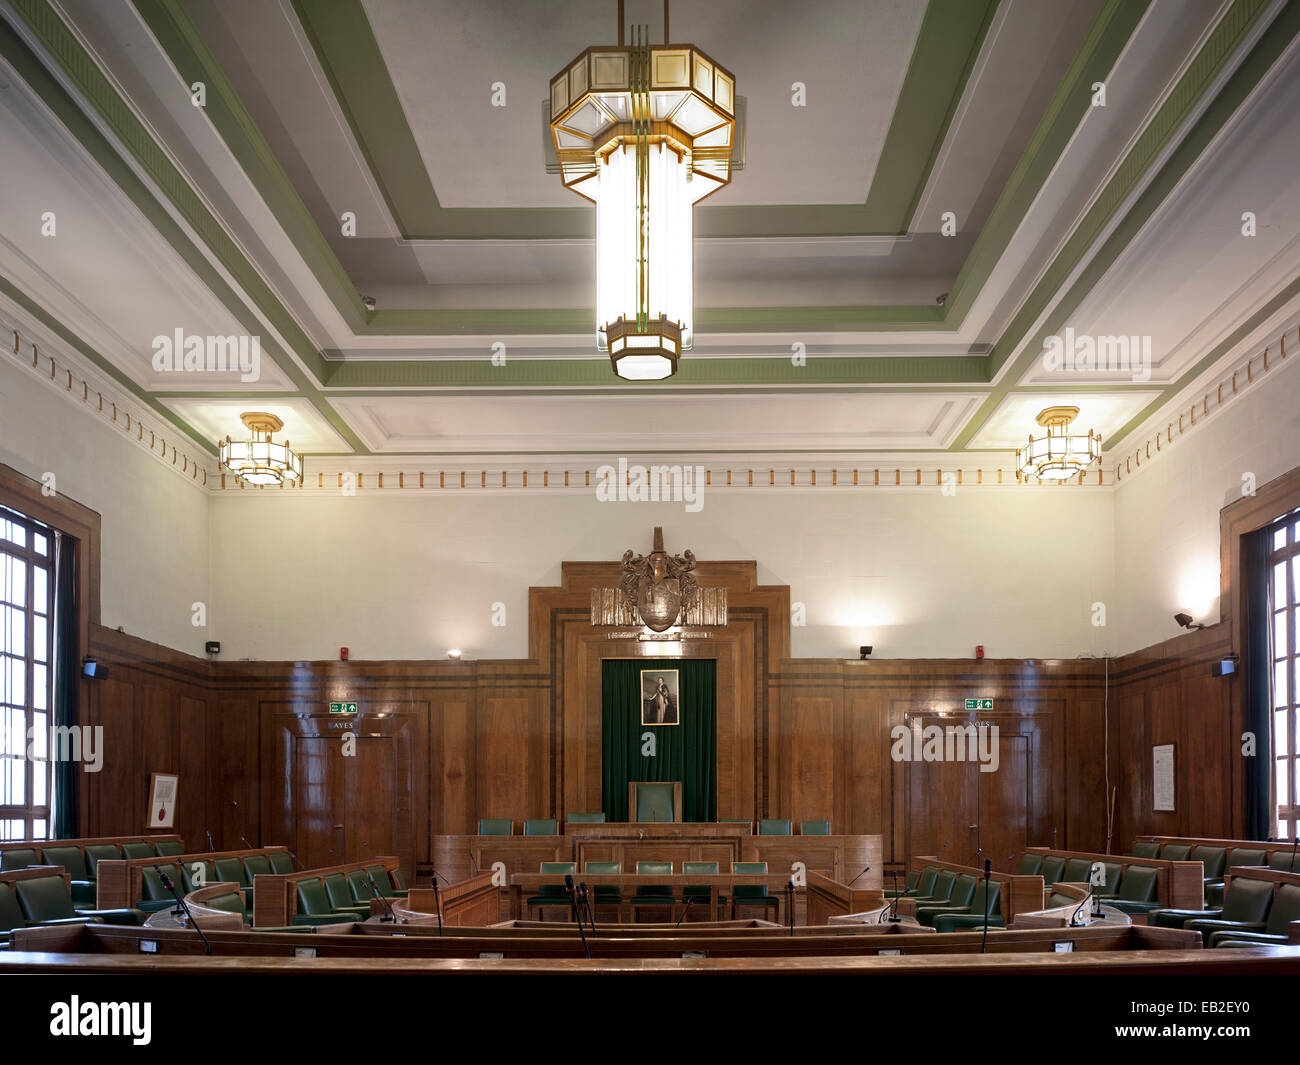 Hackney Town Hall, London, United Kingdom. Architect: Hawkins Brown Architects LLP, 2012. Council Chamber Room with original oak Stock Photo